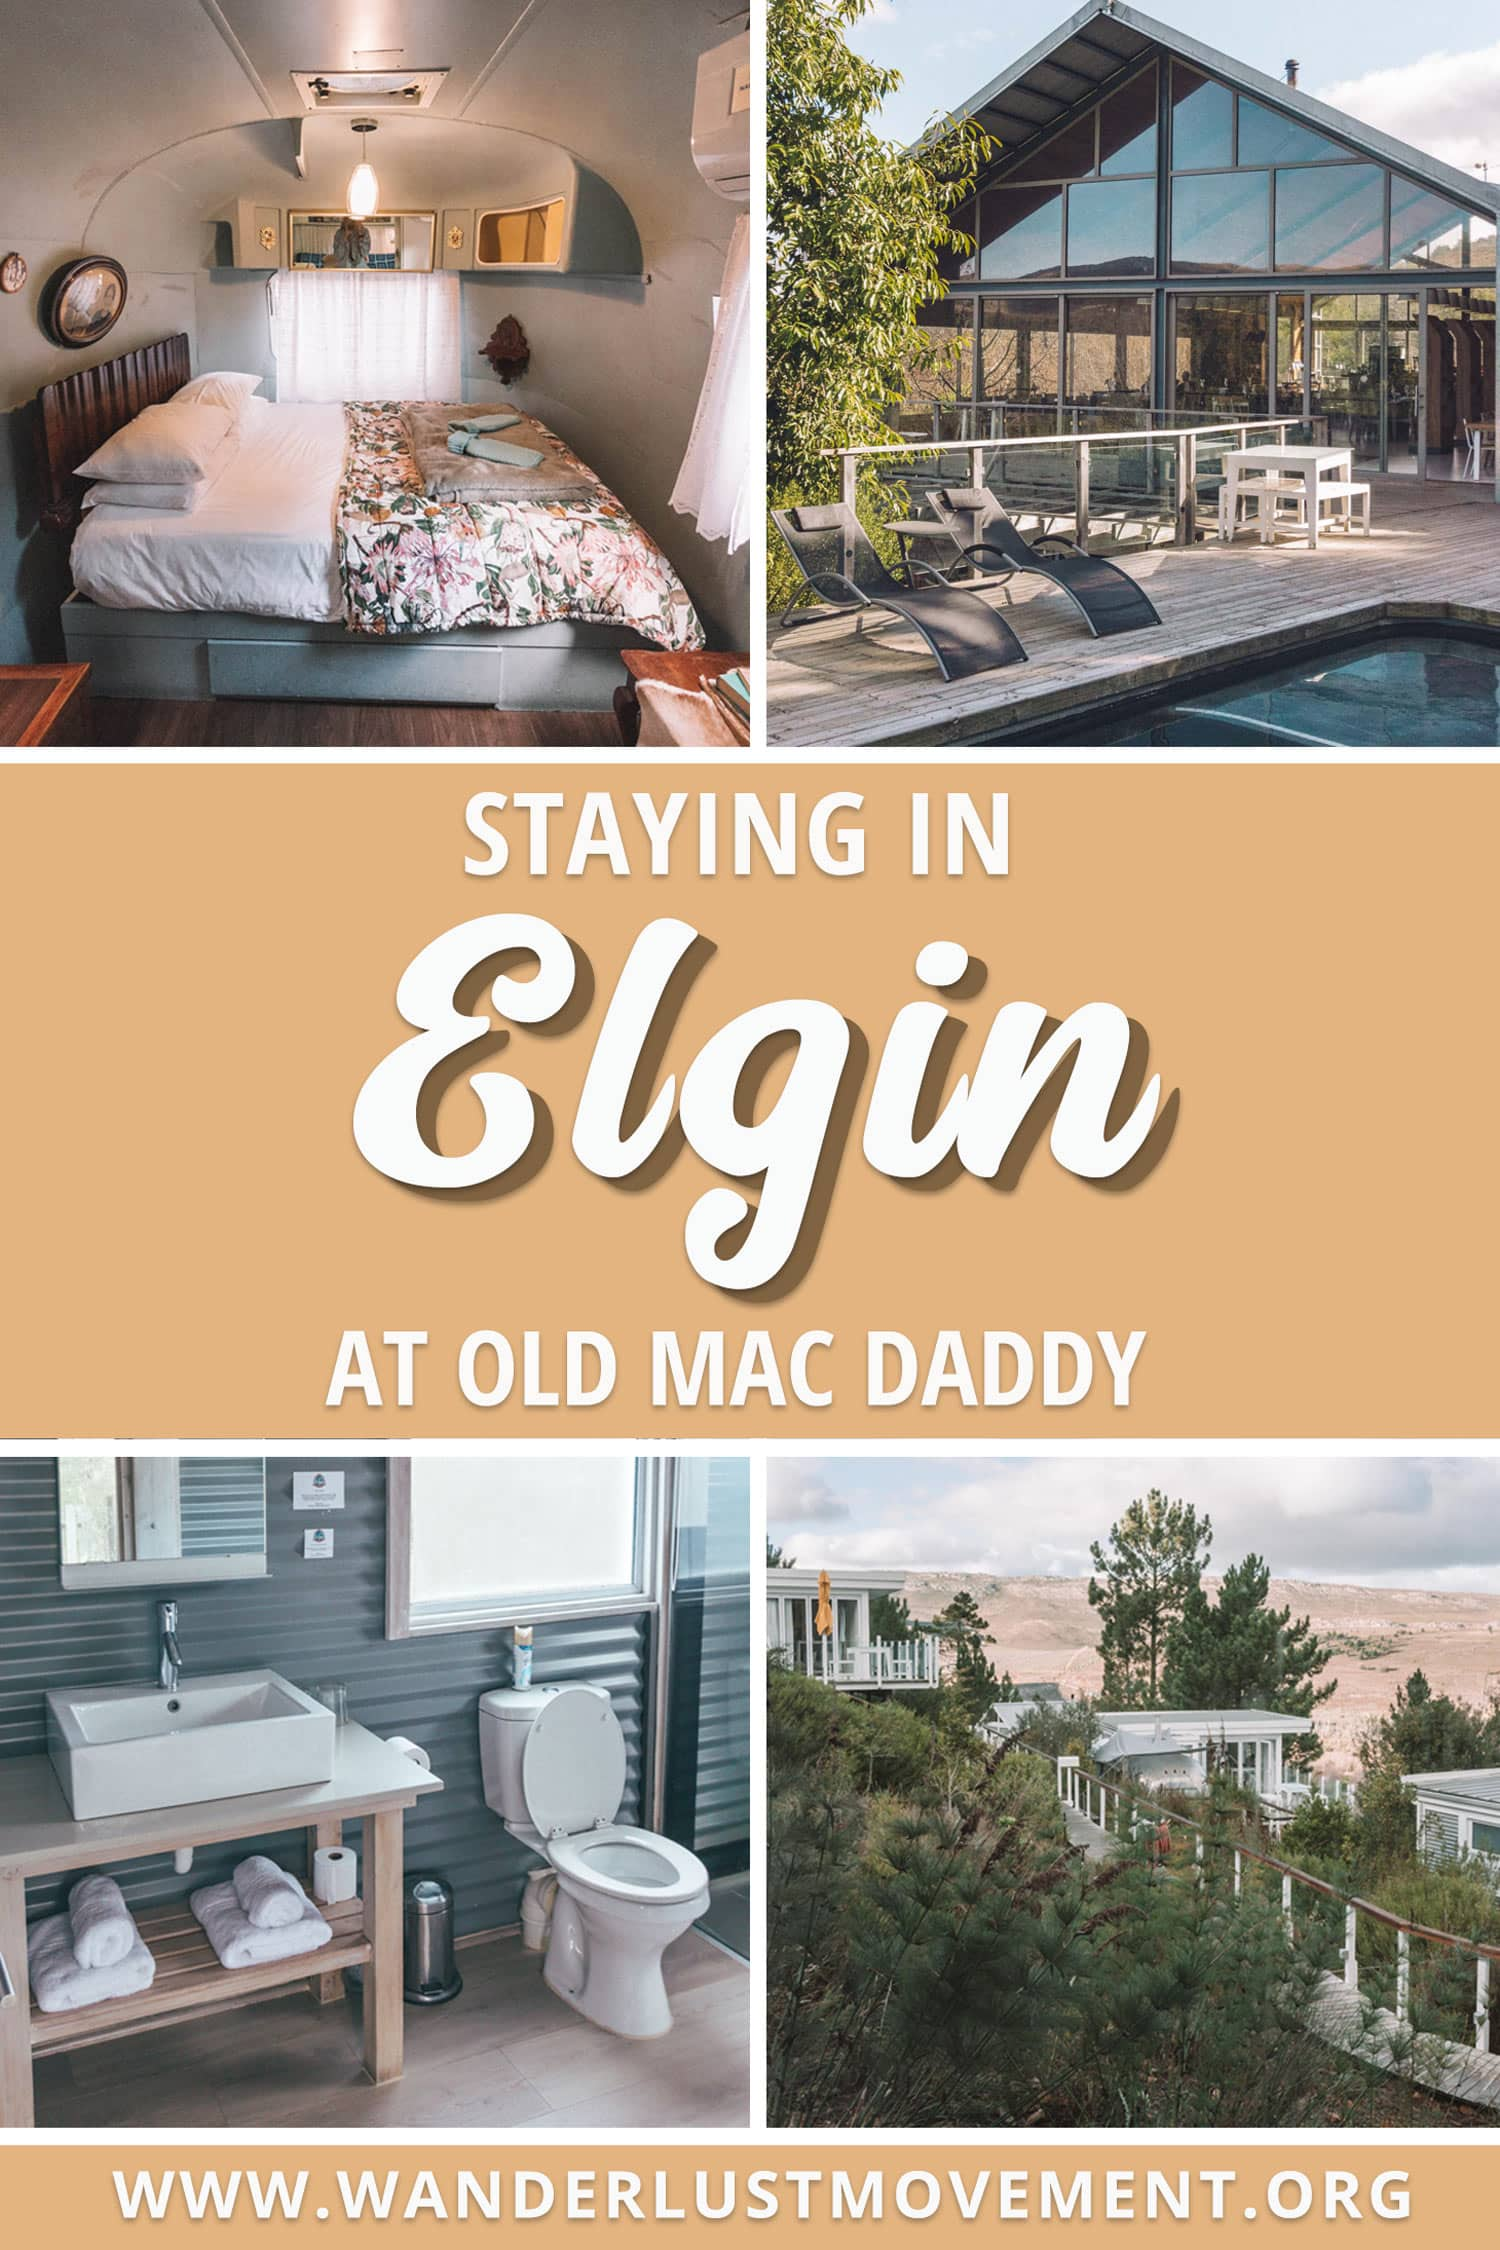 Tired of staying at run-of-the-mill hotels? Here\'s what it\'s like staying in one of Old Mac Daddy\'s custom airstream trailers in Elgin, South Africa! | South Africa Travel Tips | Accommodation Reviews | Where to Stay in South Africa #southafrica #travel #hotels